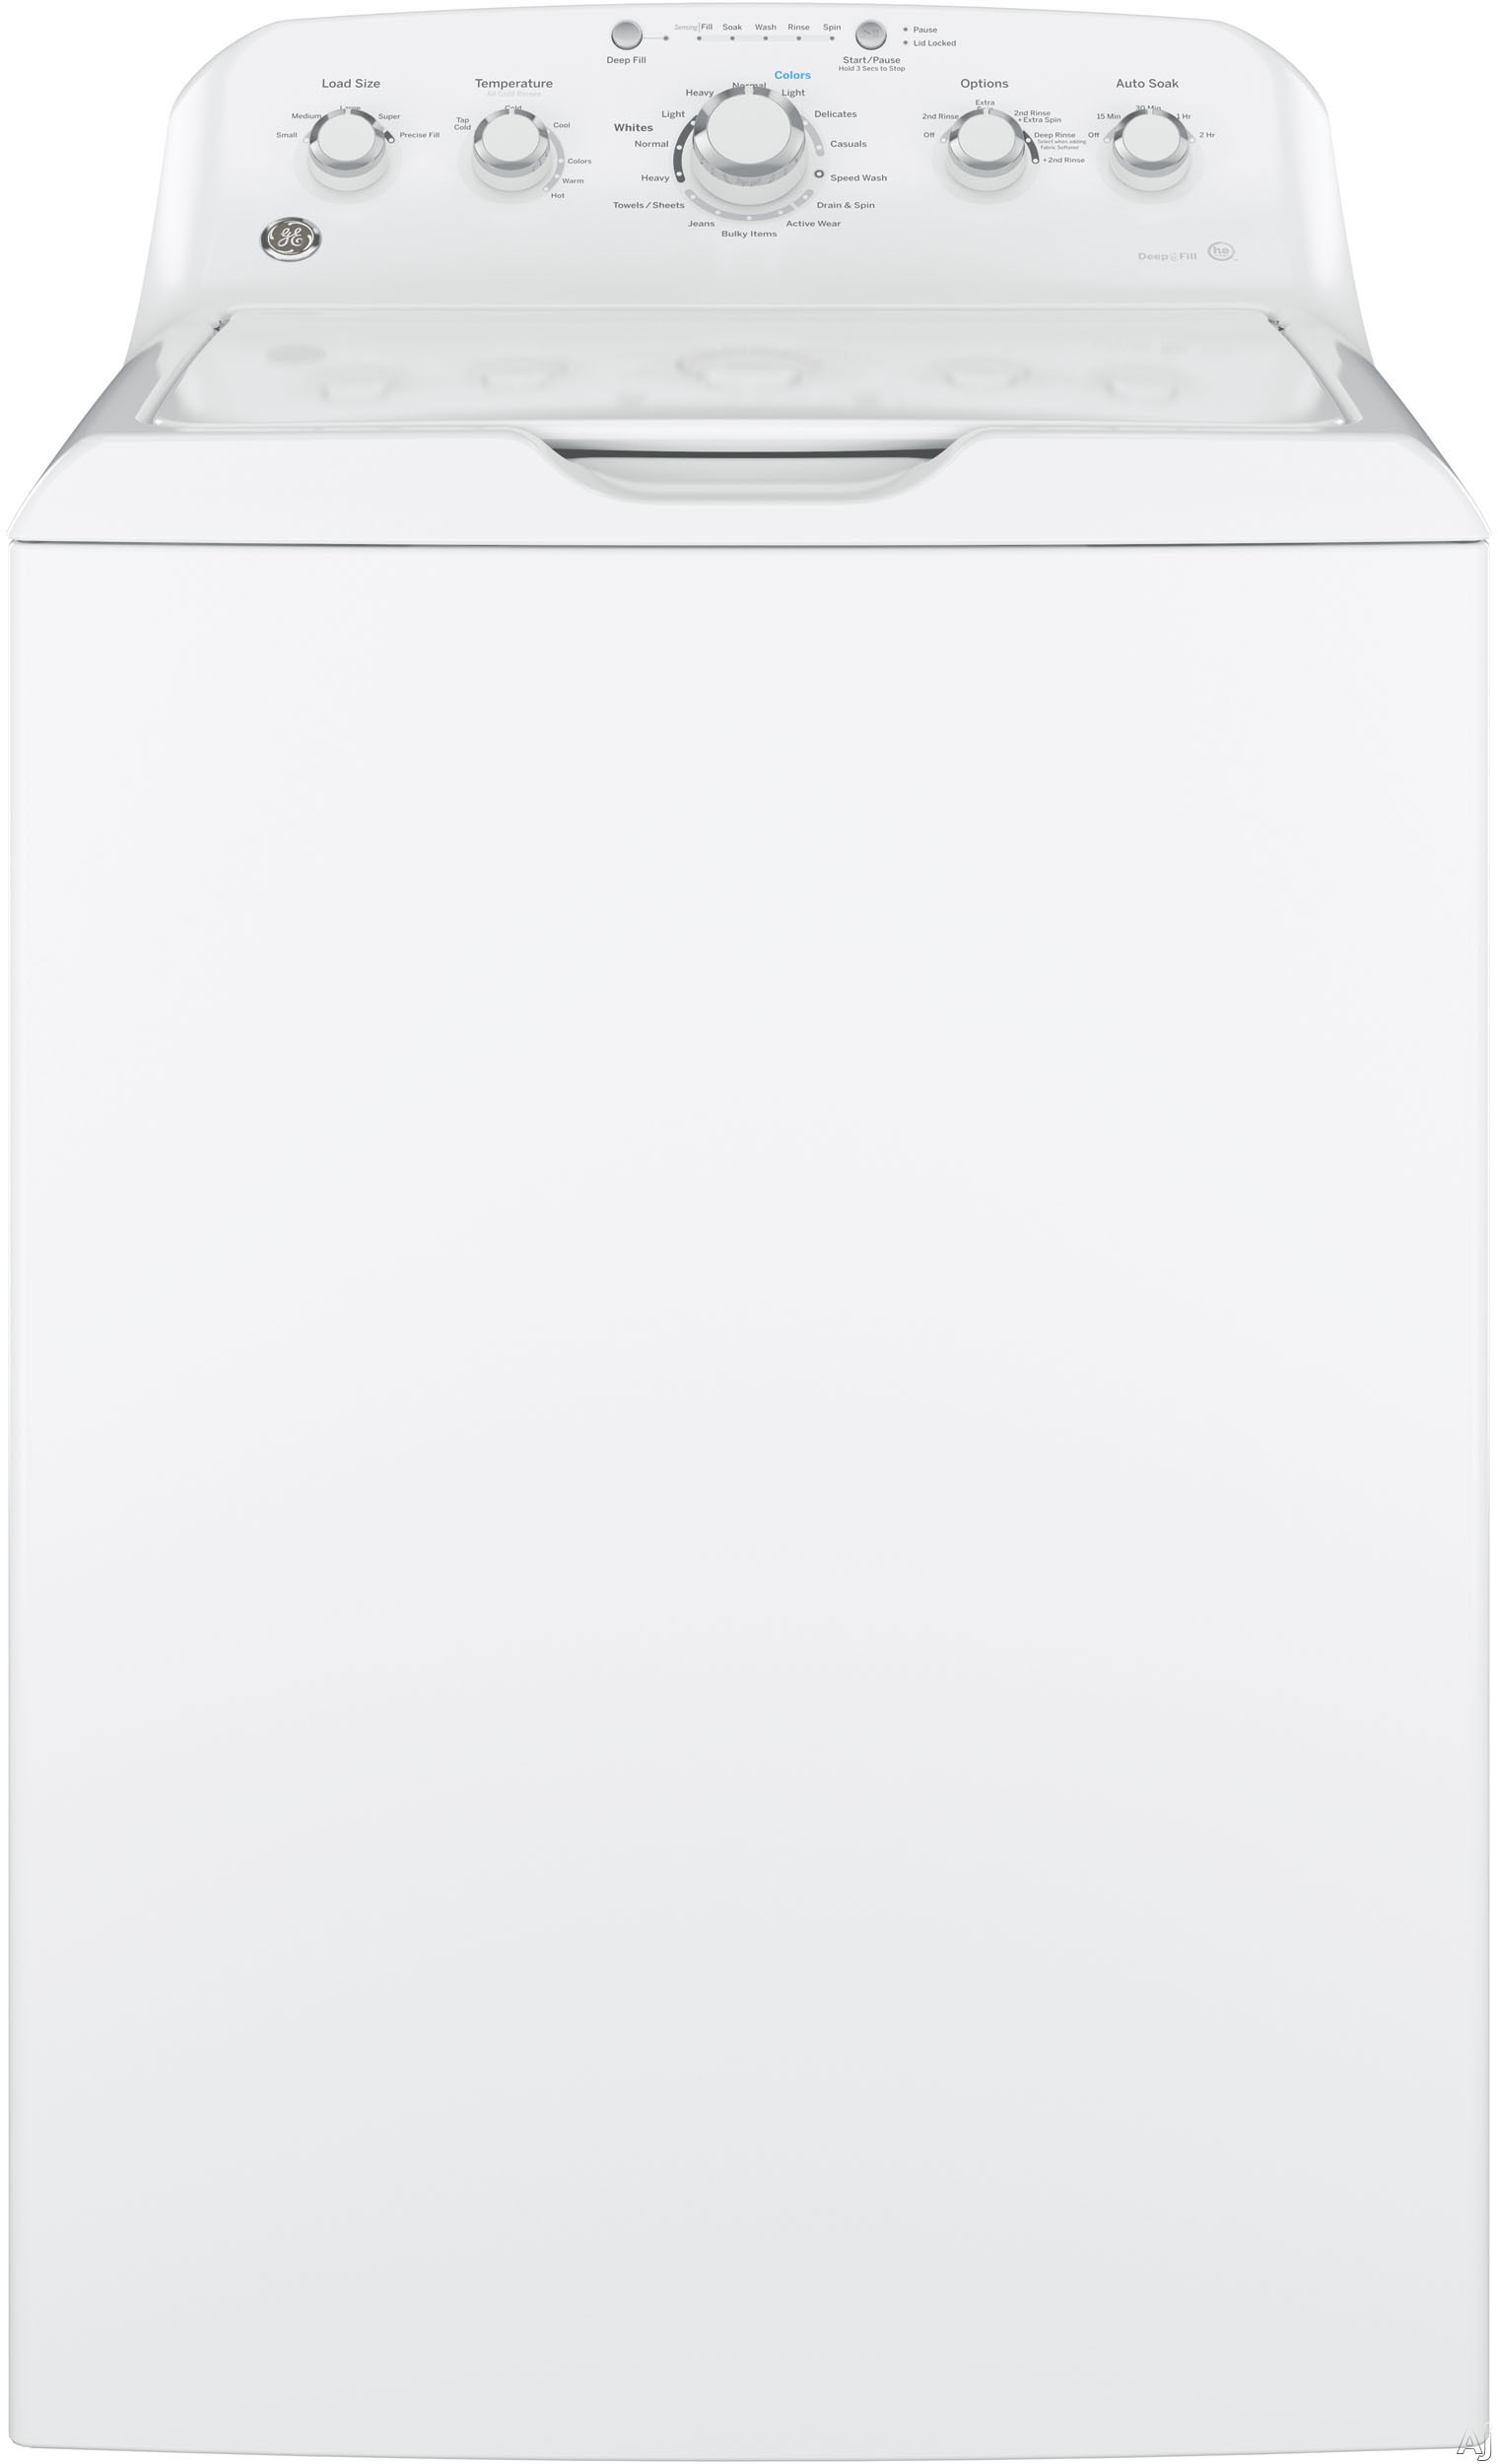 "White Top Load Laundry Pair with GTW460ASJWW 27"""" Washer and GTD42GASJWW 27"""" Gas"" 602743"